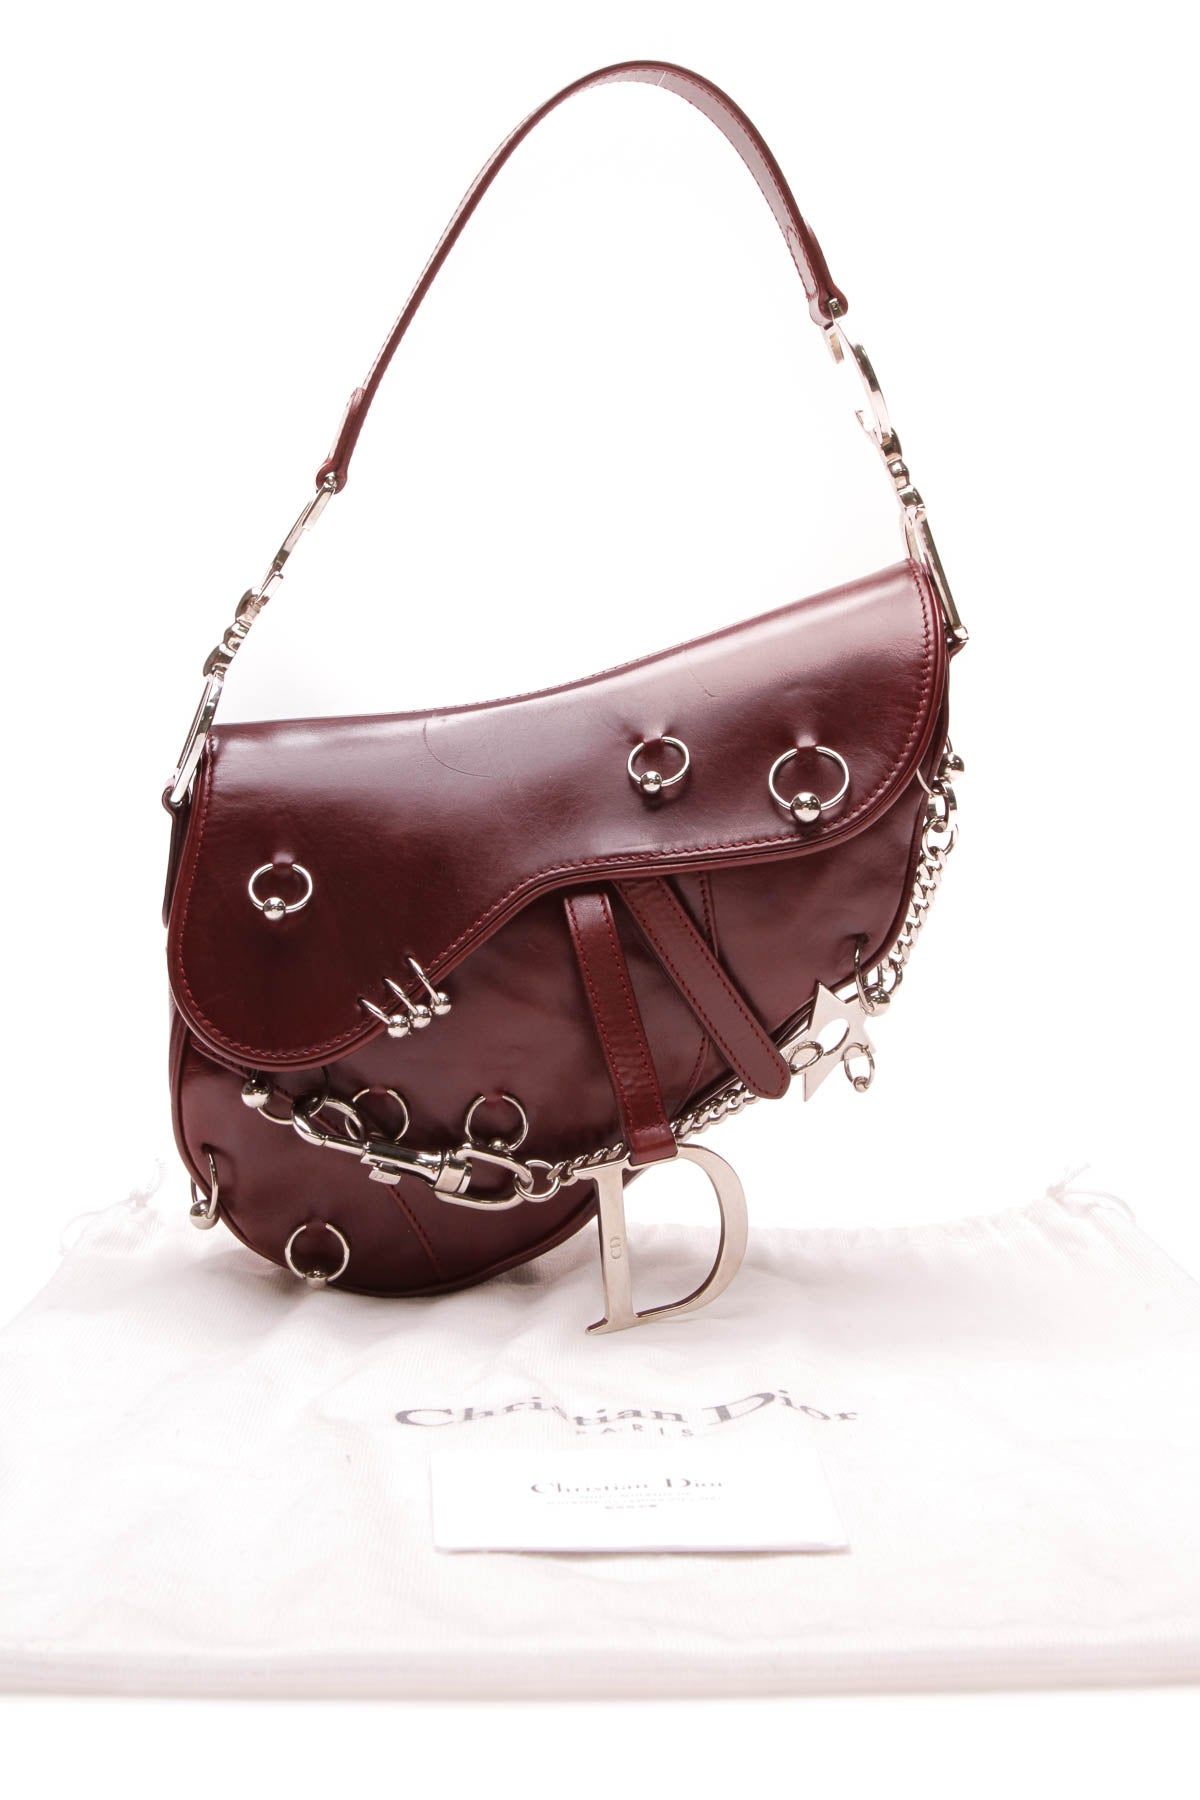 Hardcore Piercing Saddle Bag - Burgundy